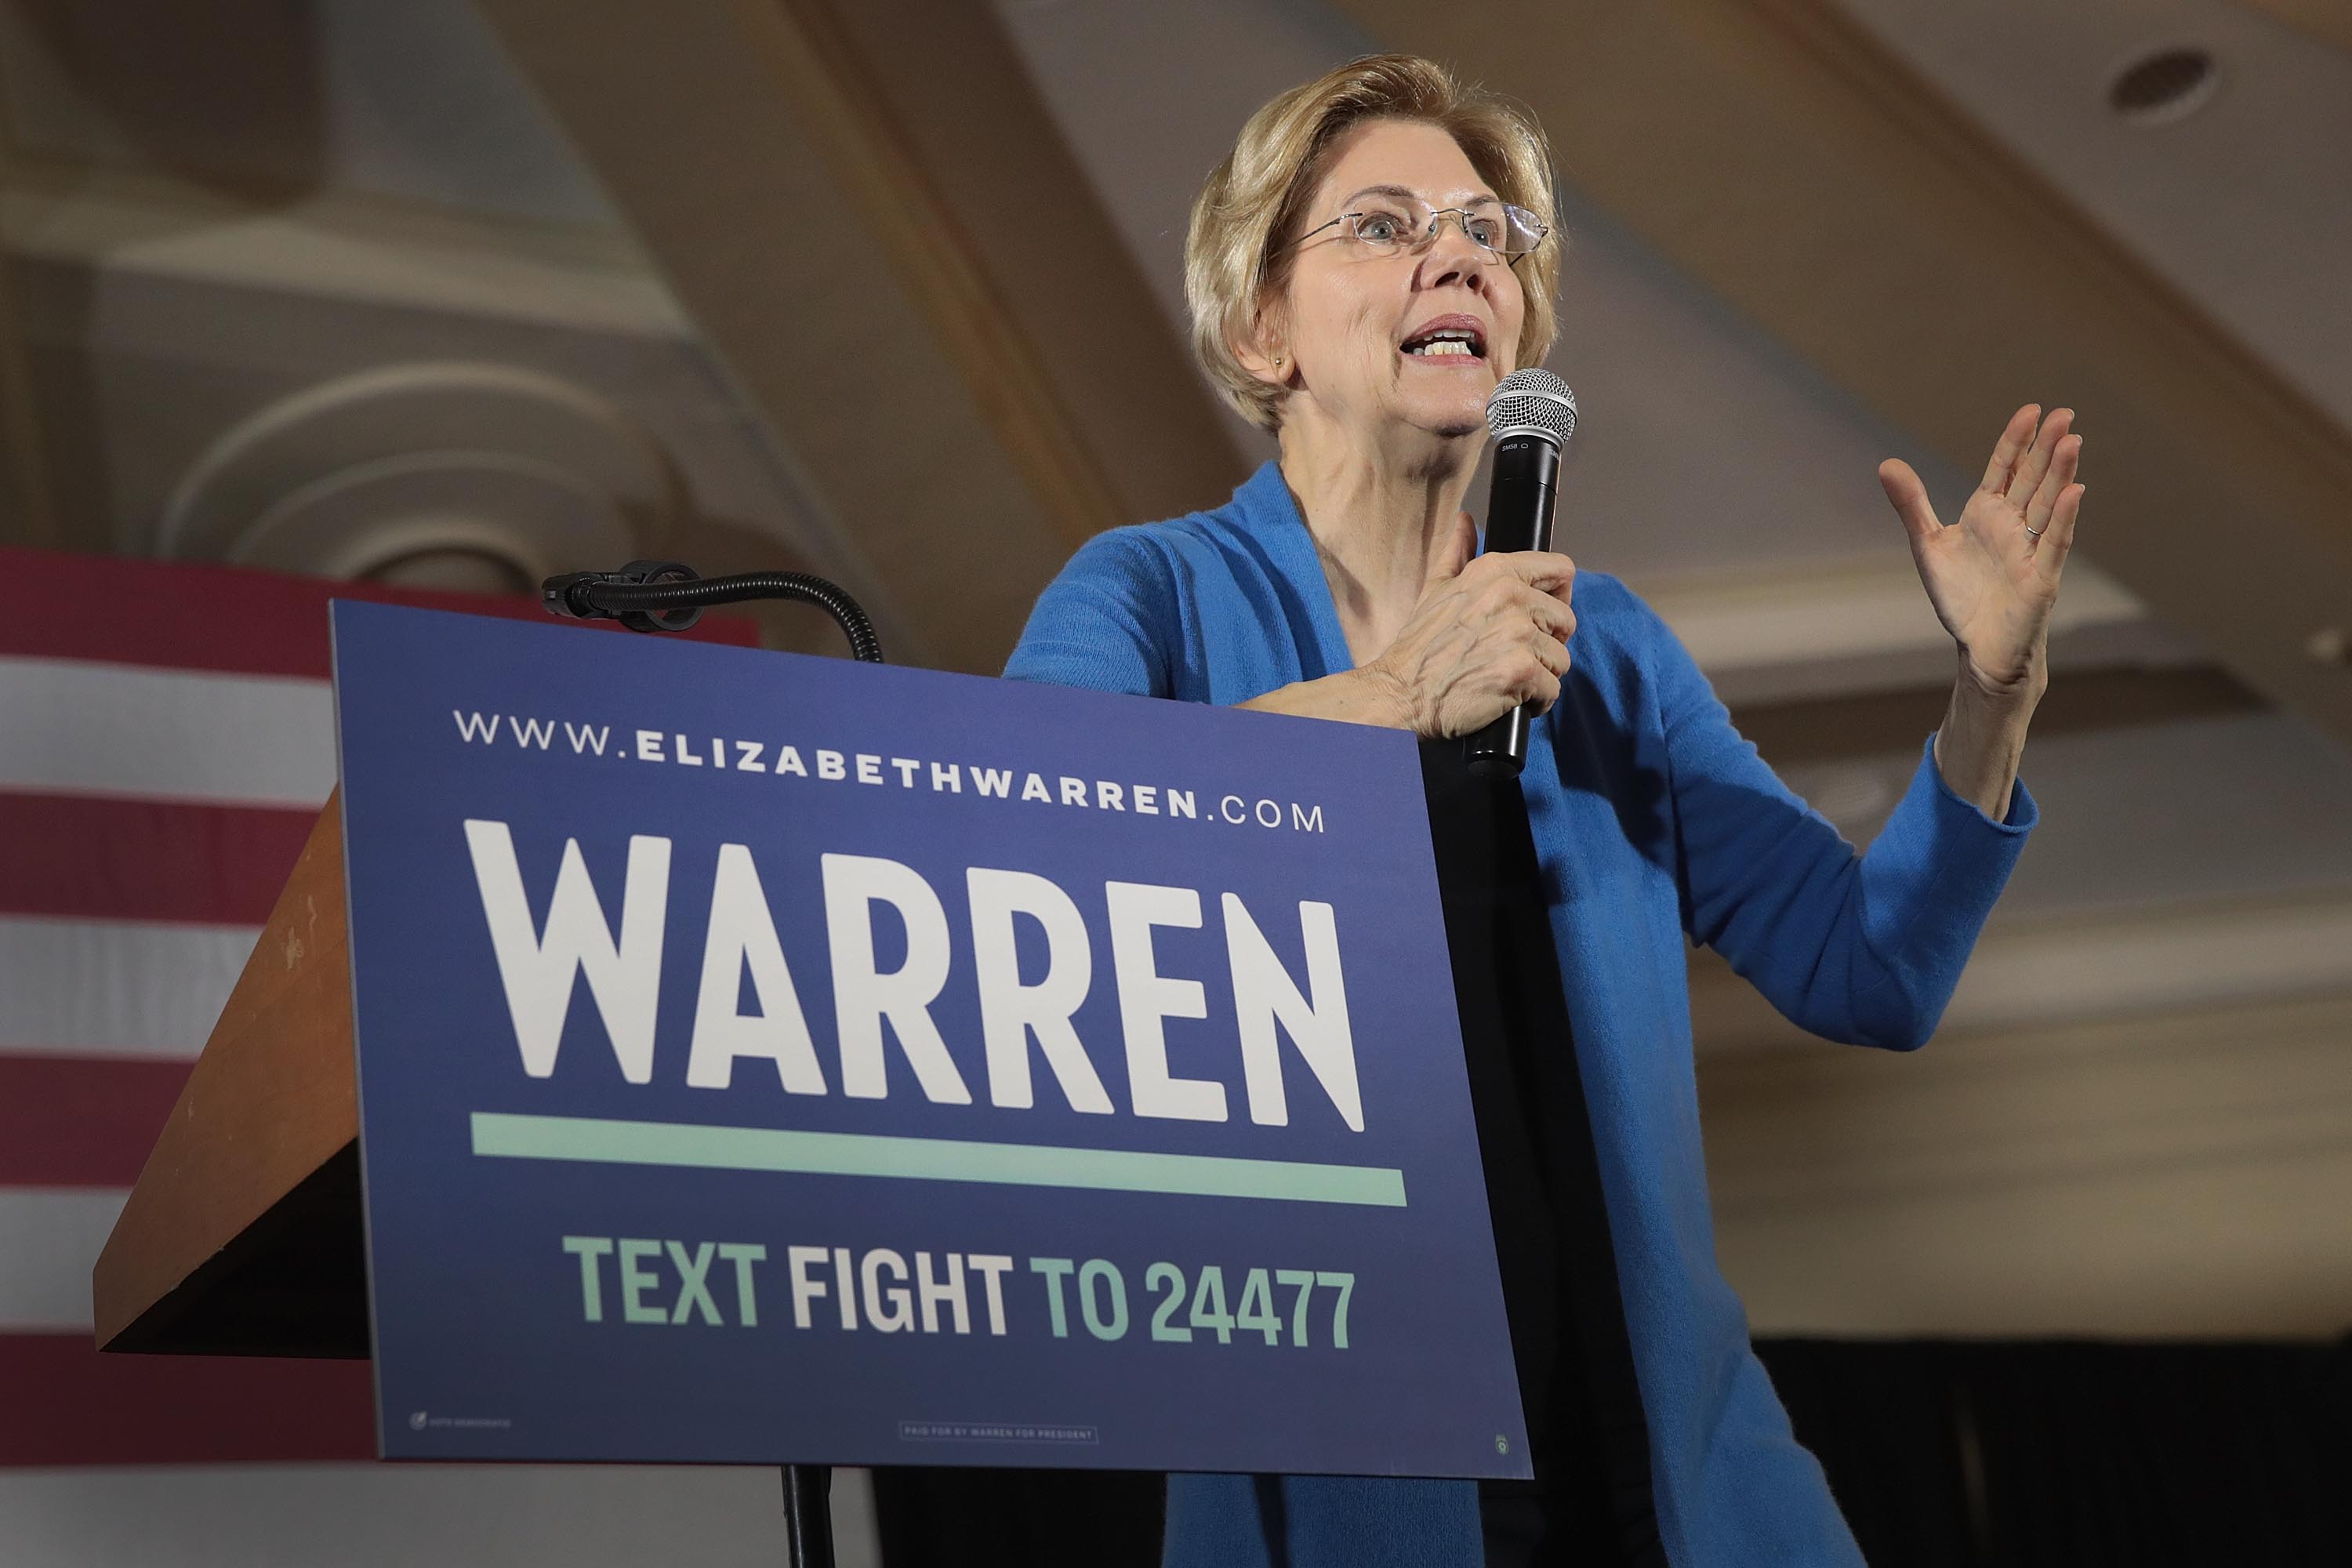 Sen. Elizabeth Warren (D-MA) speaks at a campaign rally at the University of Iowa on February 10, 2019 in Iowa City, Iowa.